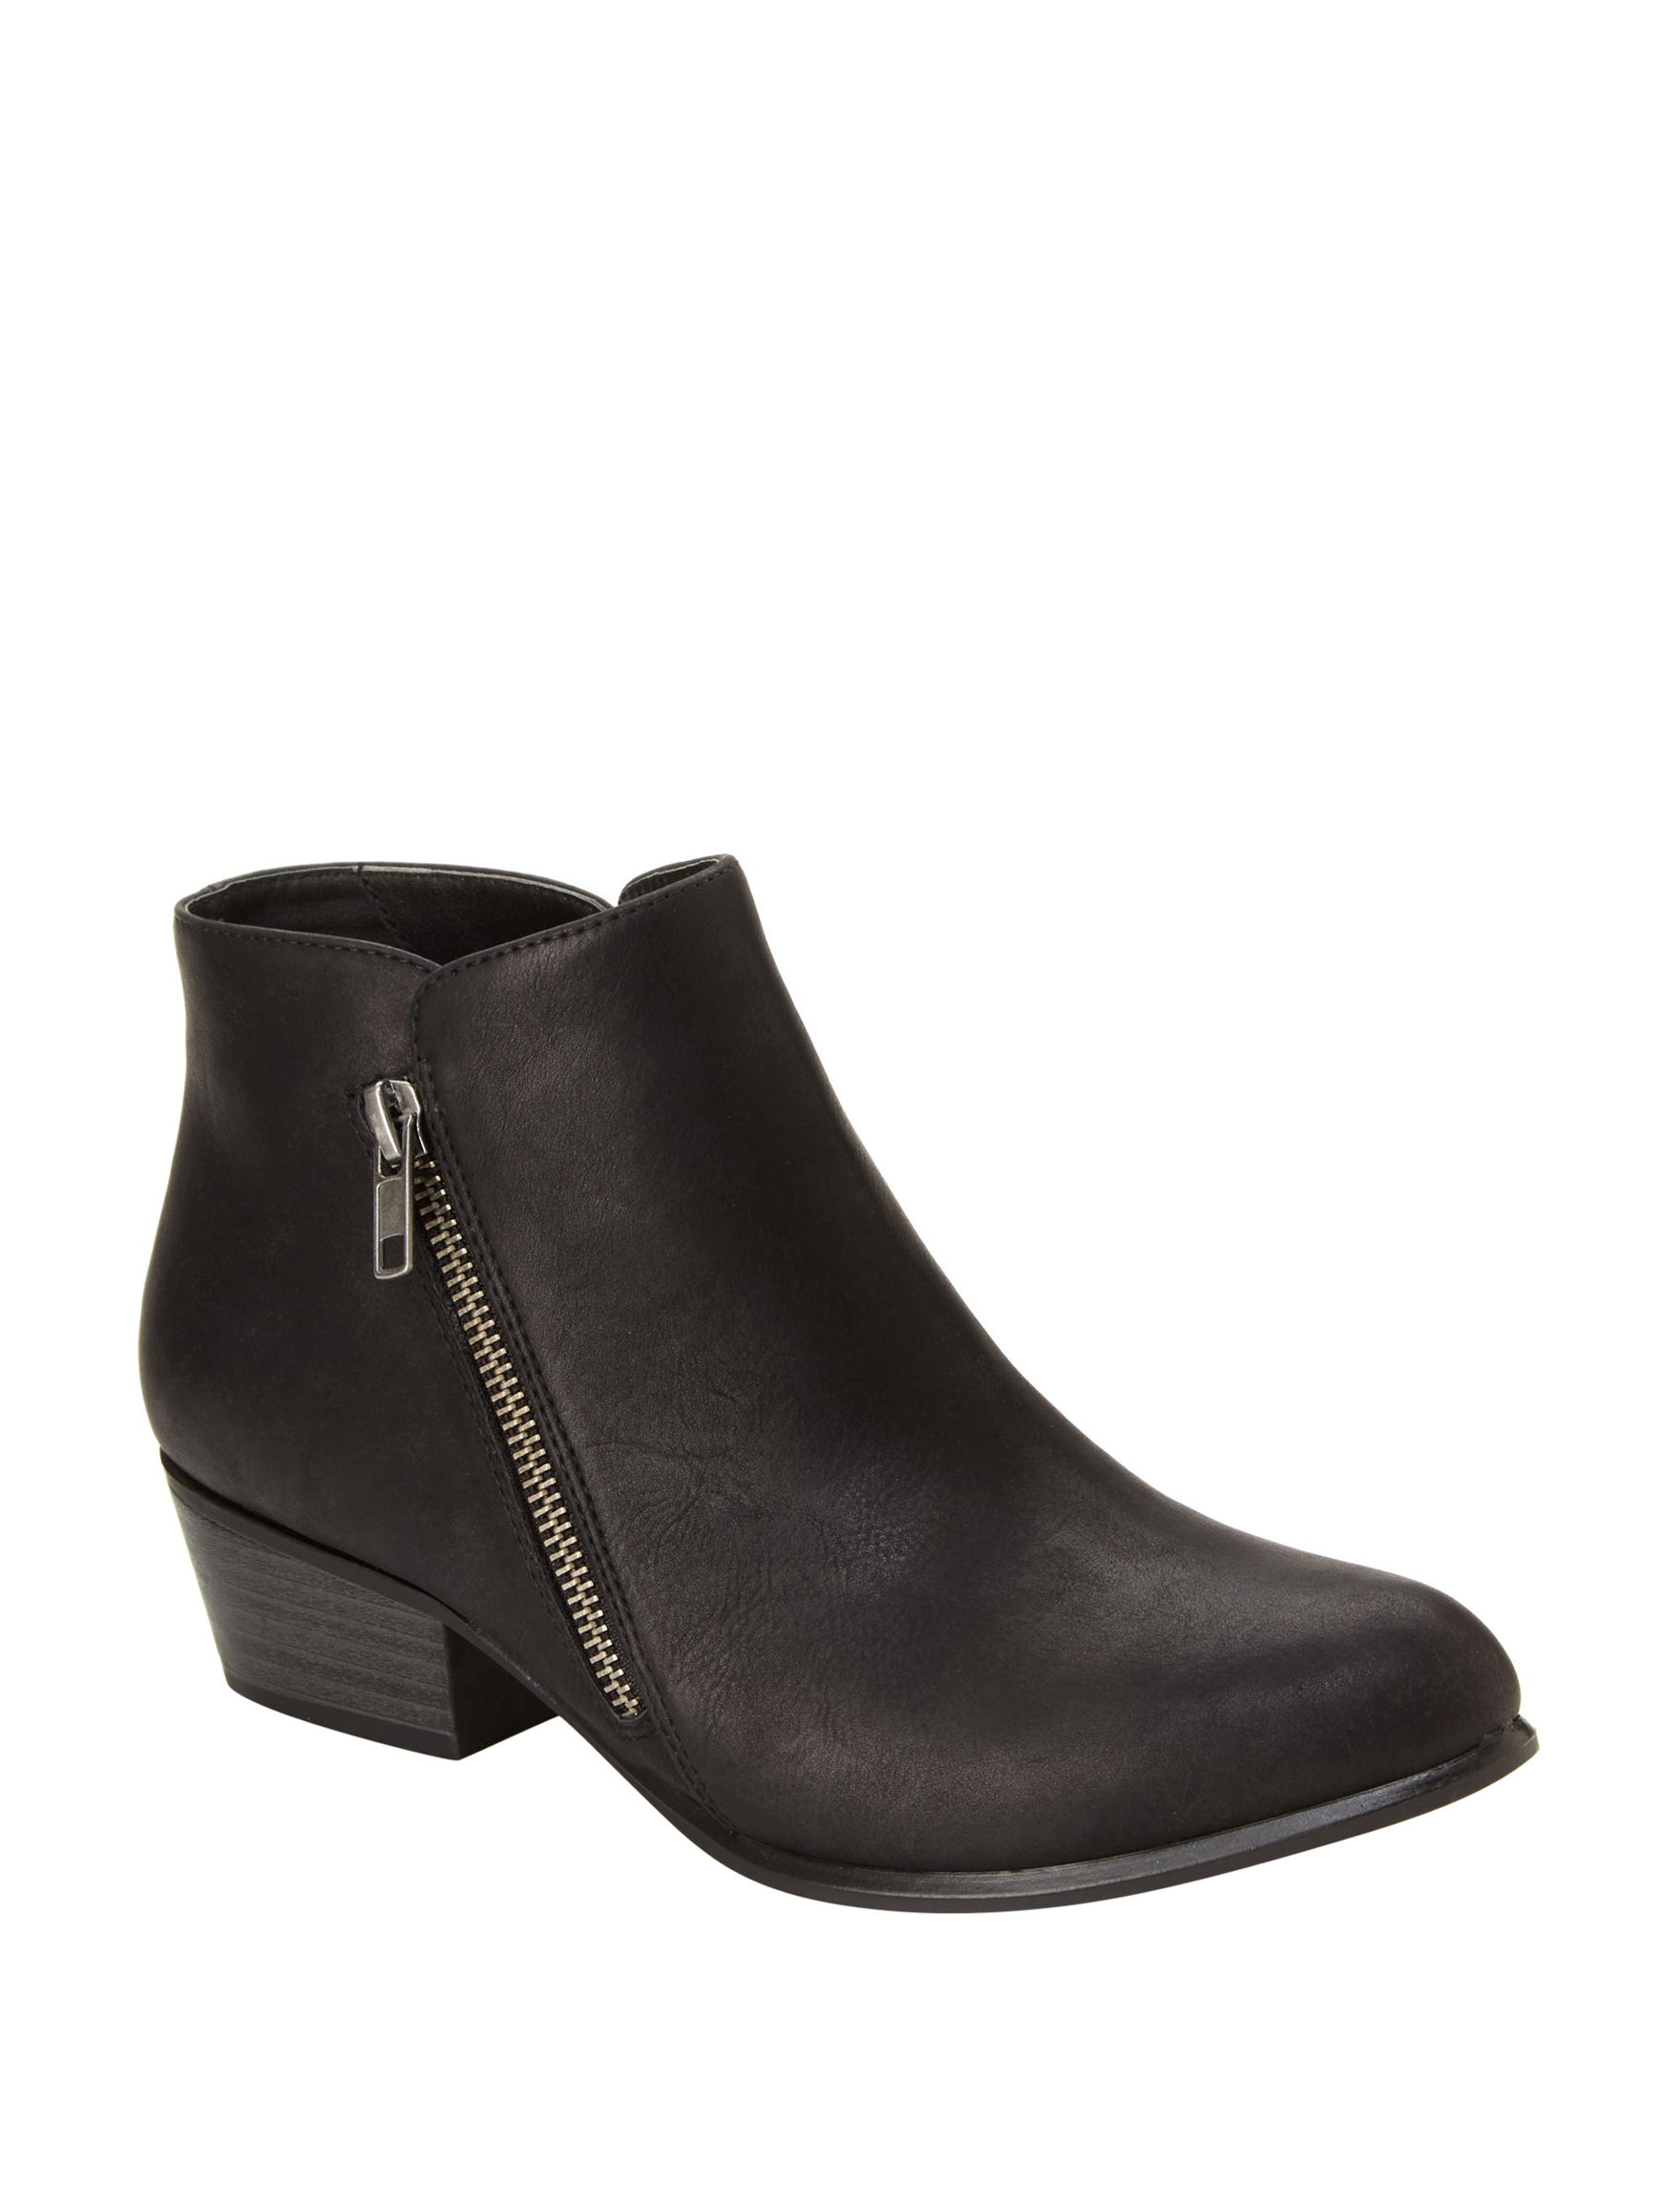 Unionbay Black Ankle Boots & Booties